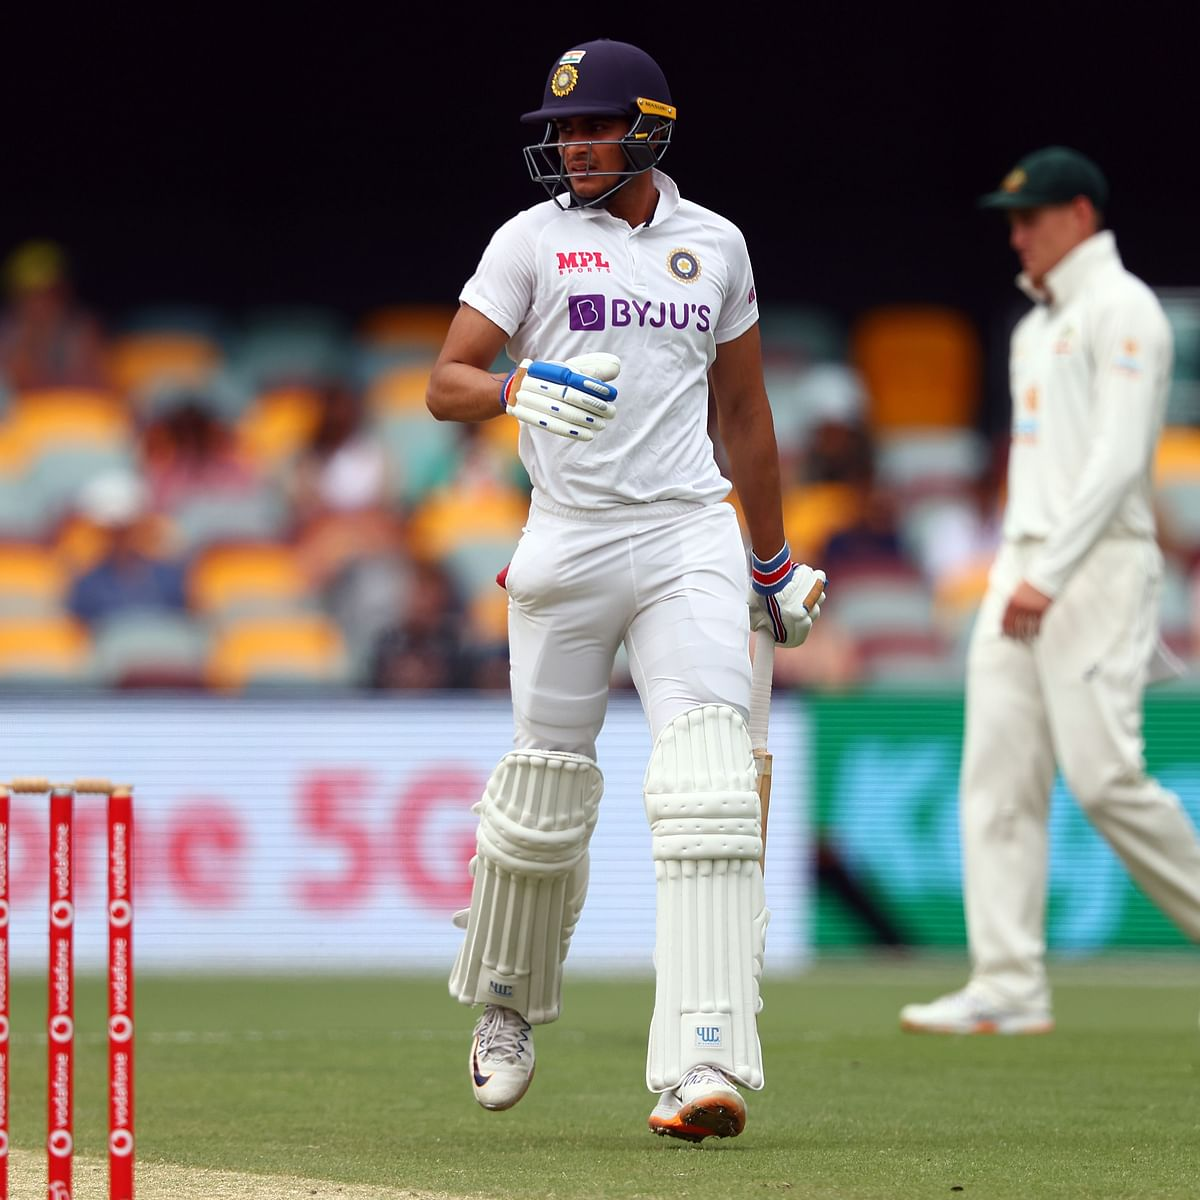 Ind vs Aus, 4th Test: Shubman Gill fifty takes India to 83/1 at lunch on day five